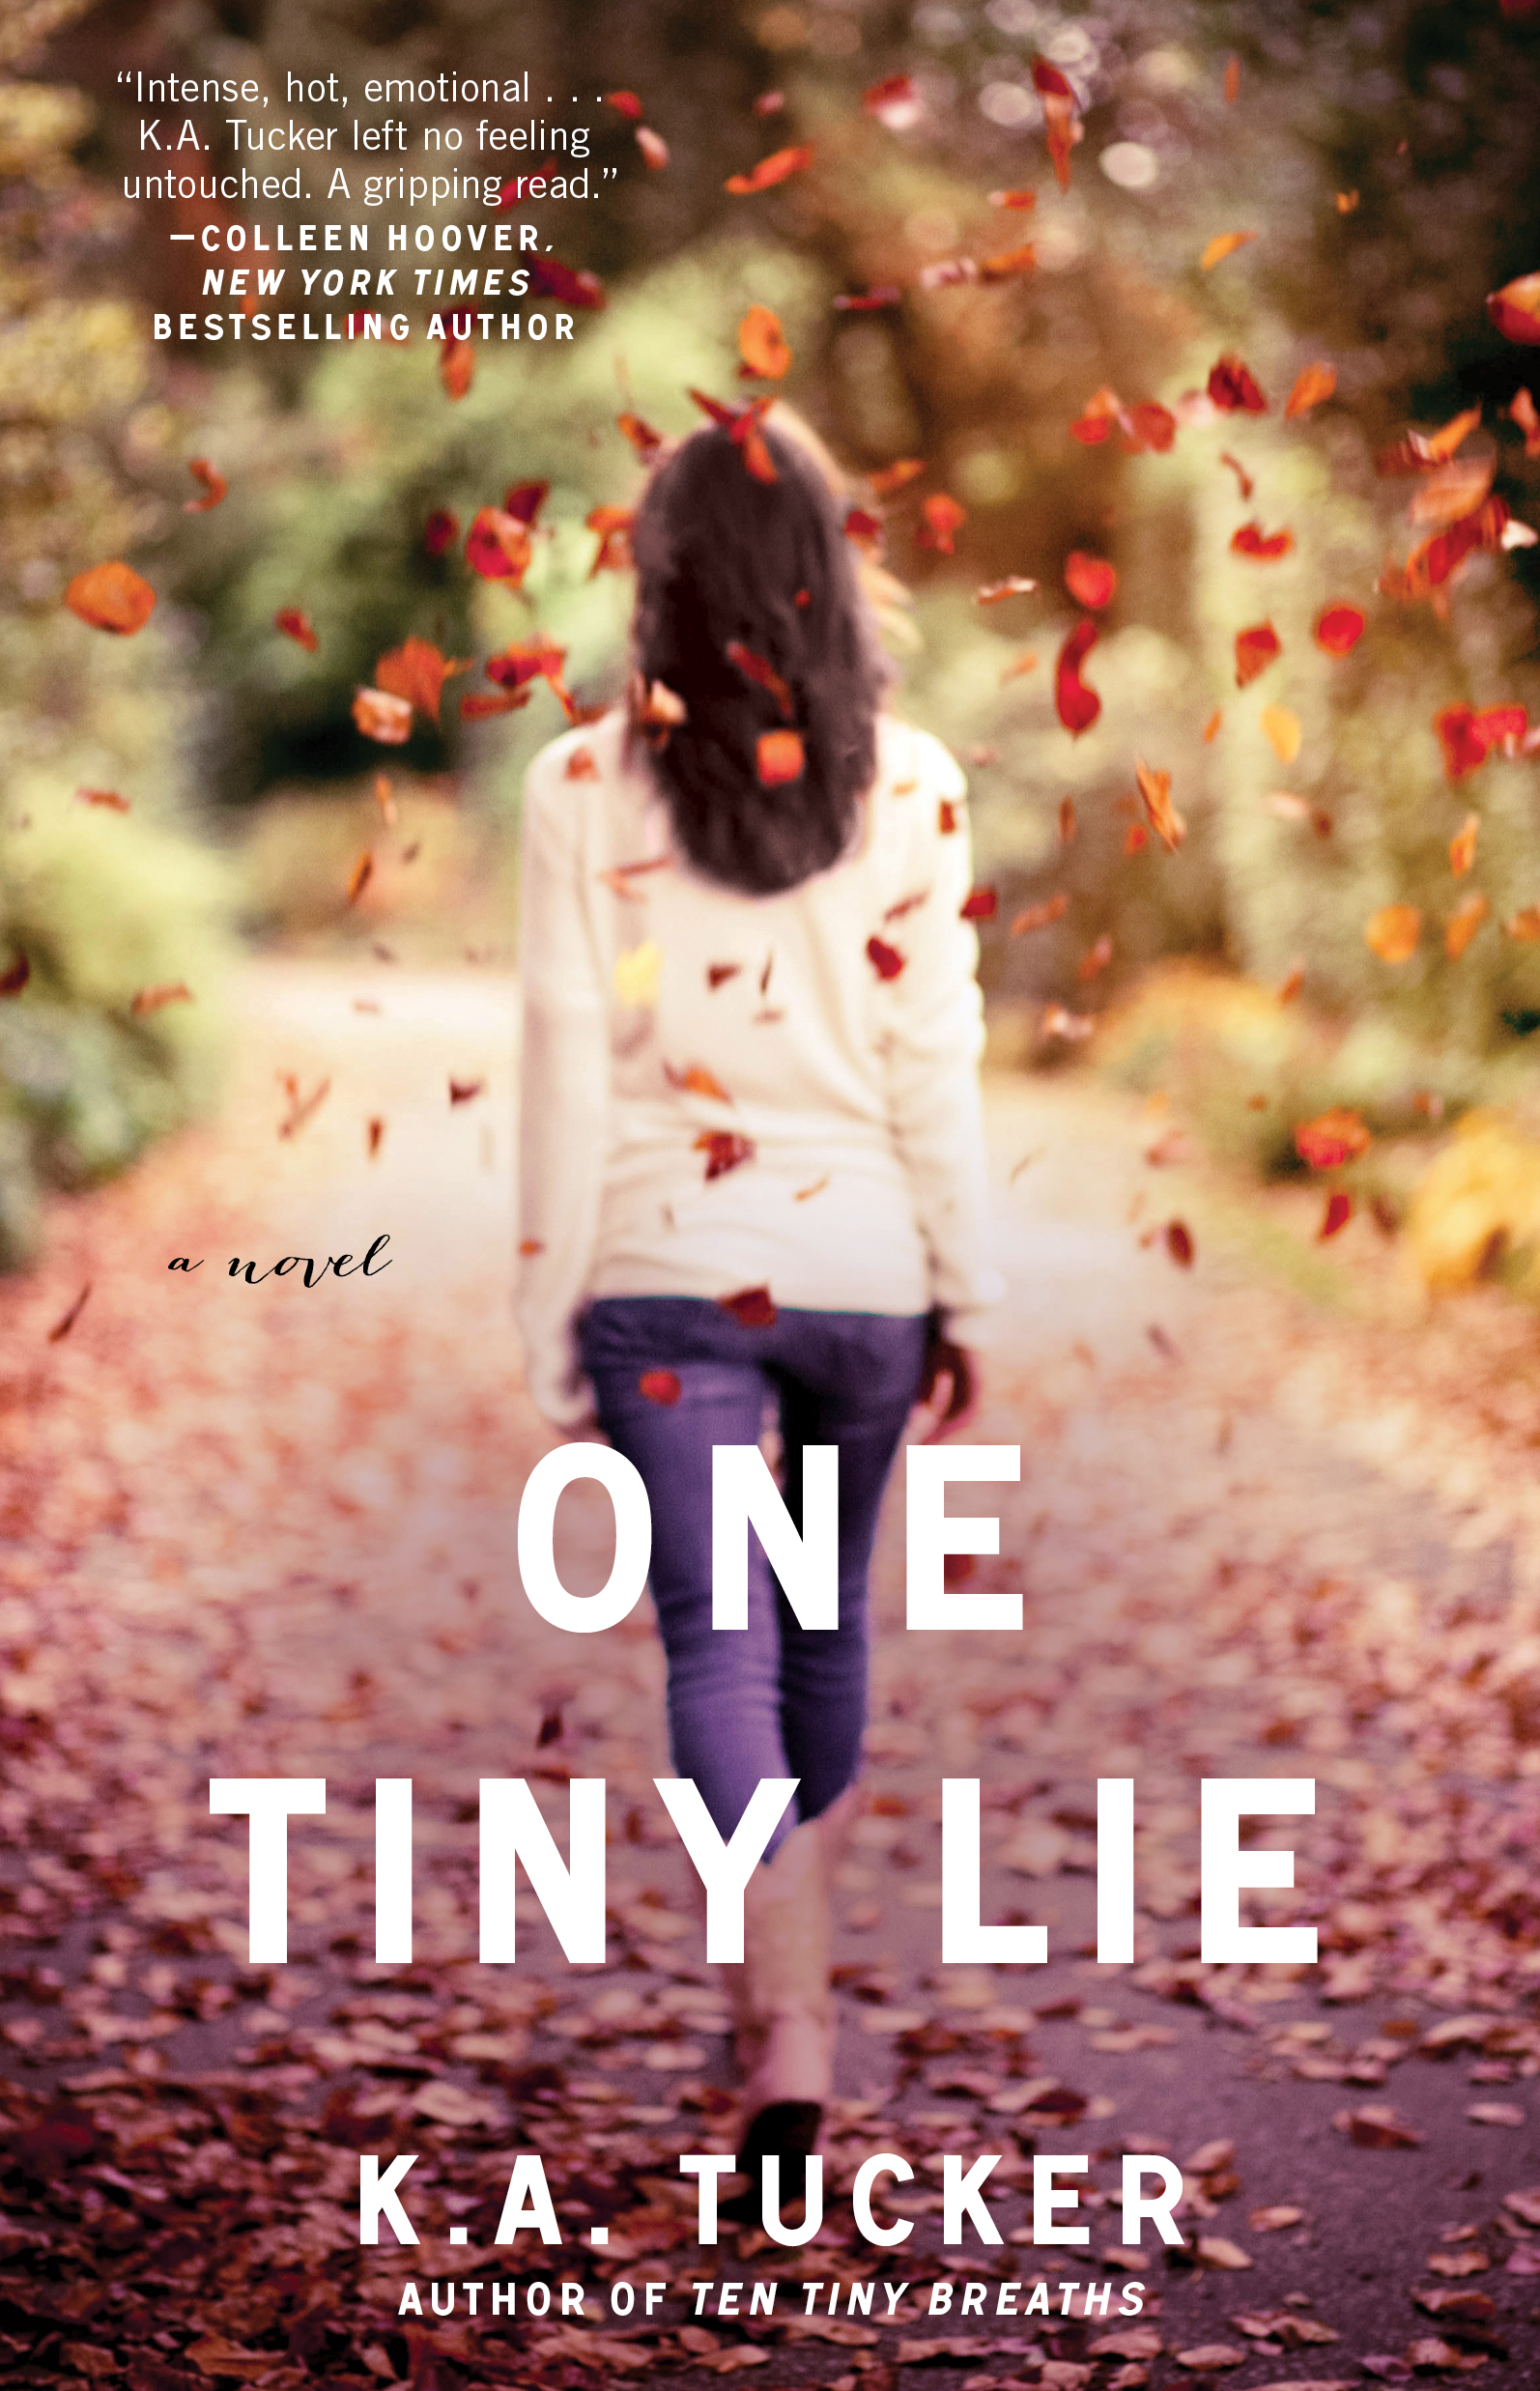 One-tiny-lie-9781476740478_hr